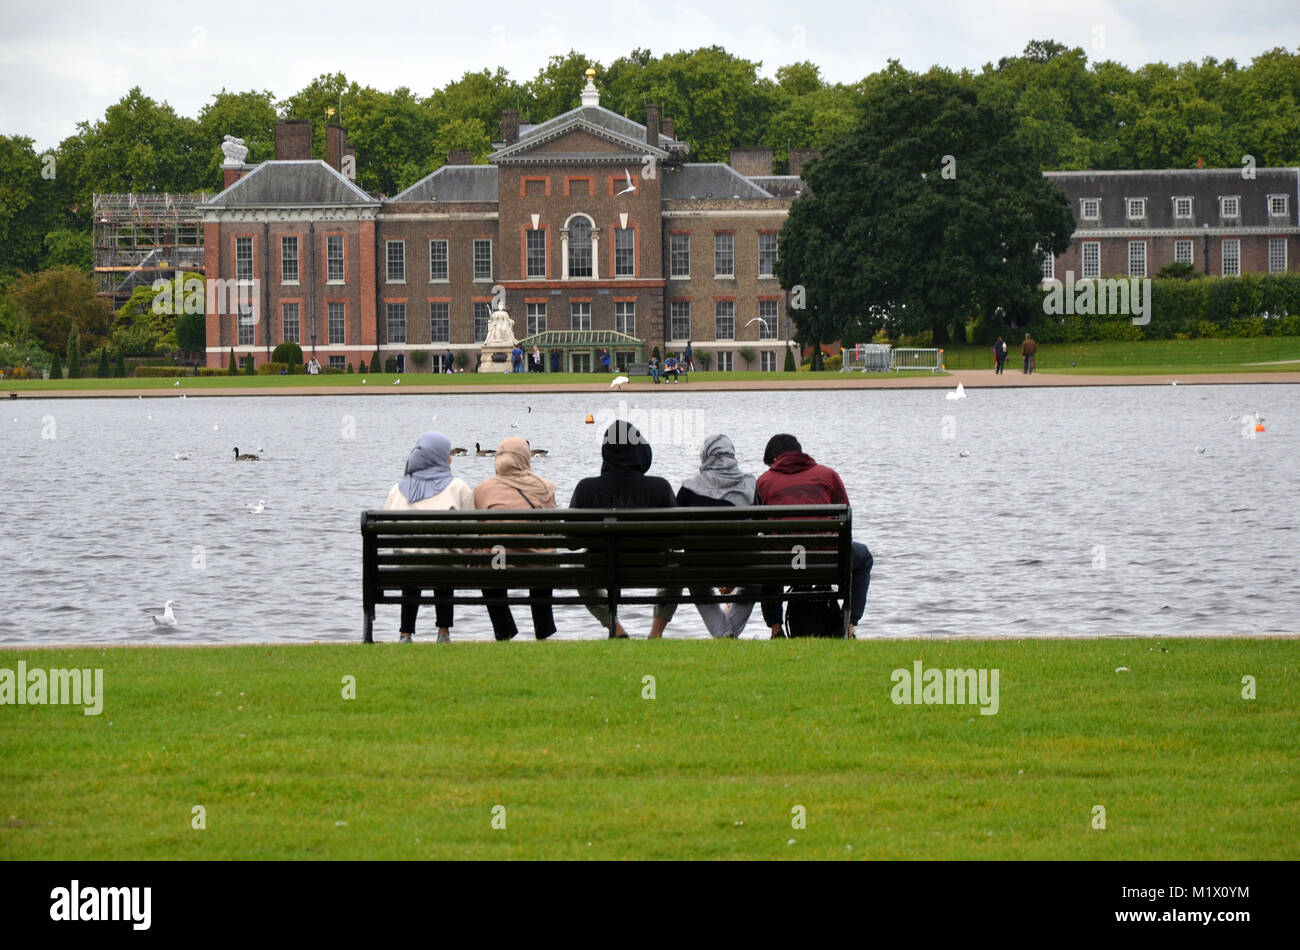 Kensington Gardens, Royal Borough of Kensington and Chelsea, London, England - Stock Image